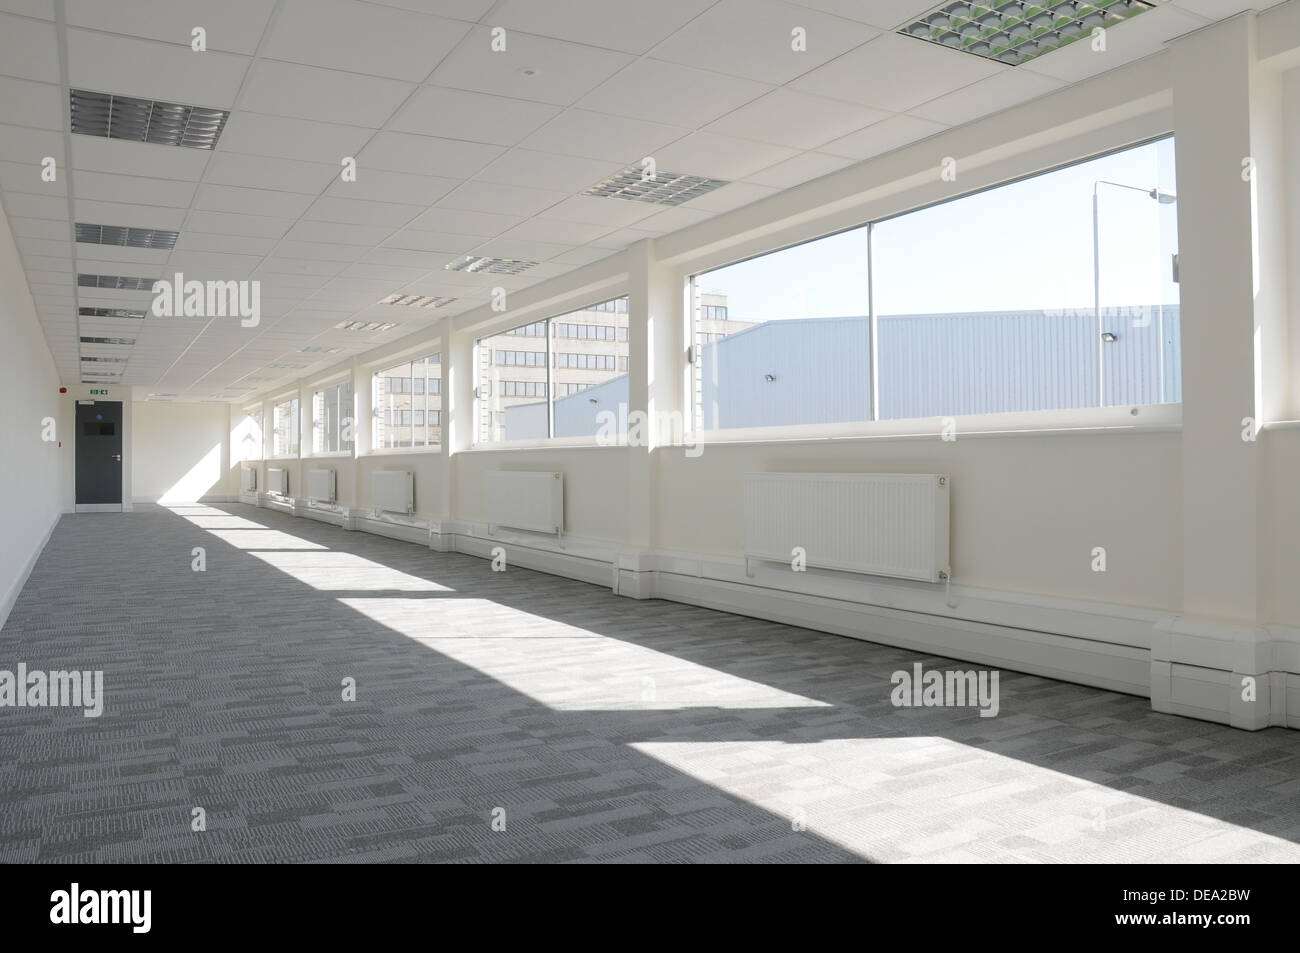 An Interior Of And Empty Modern Office Space With Grey Carpet And White  Walls, Looking Out The Windows